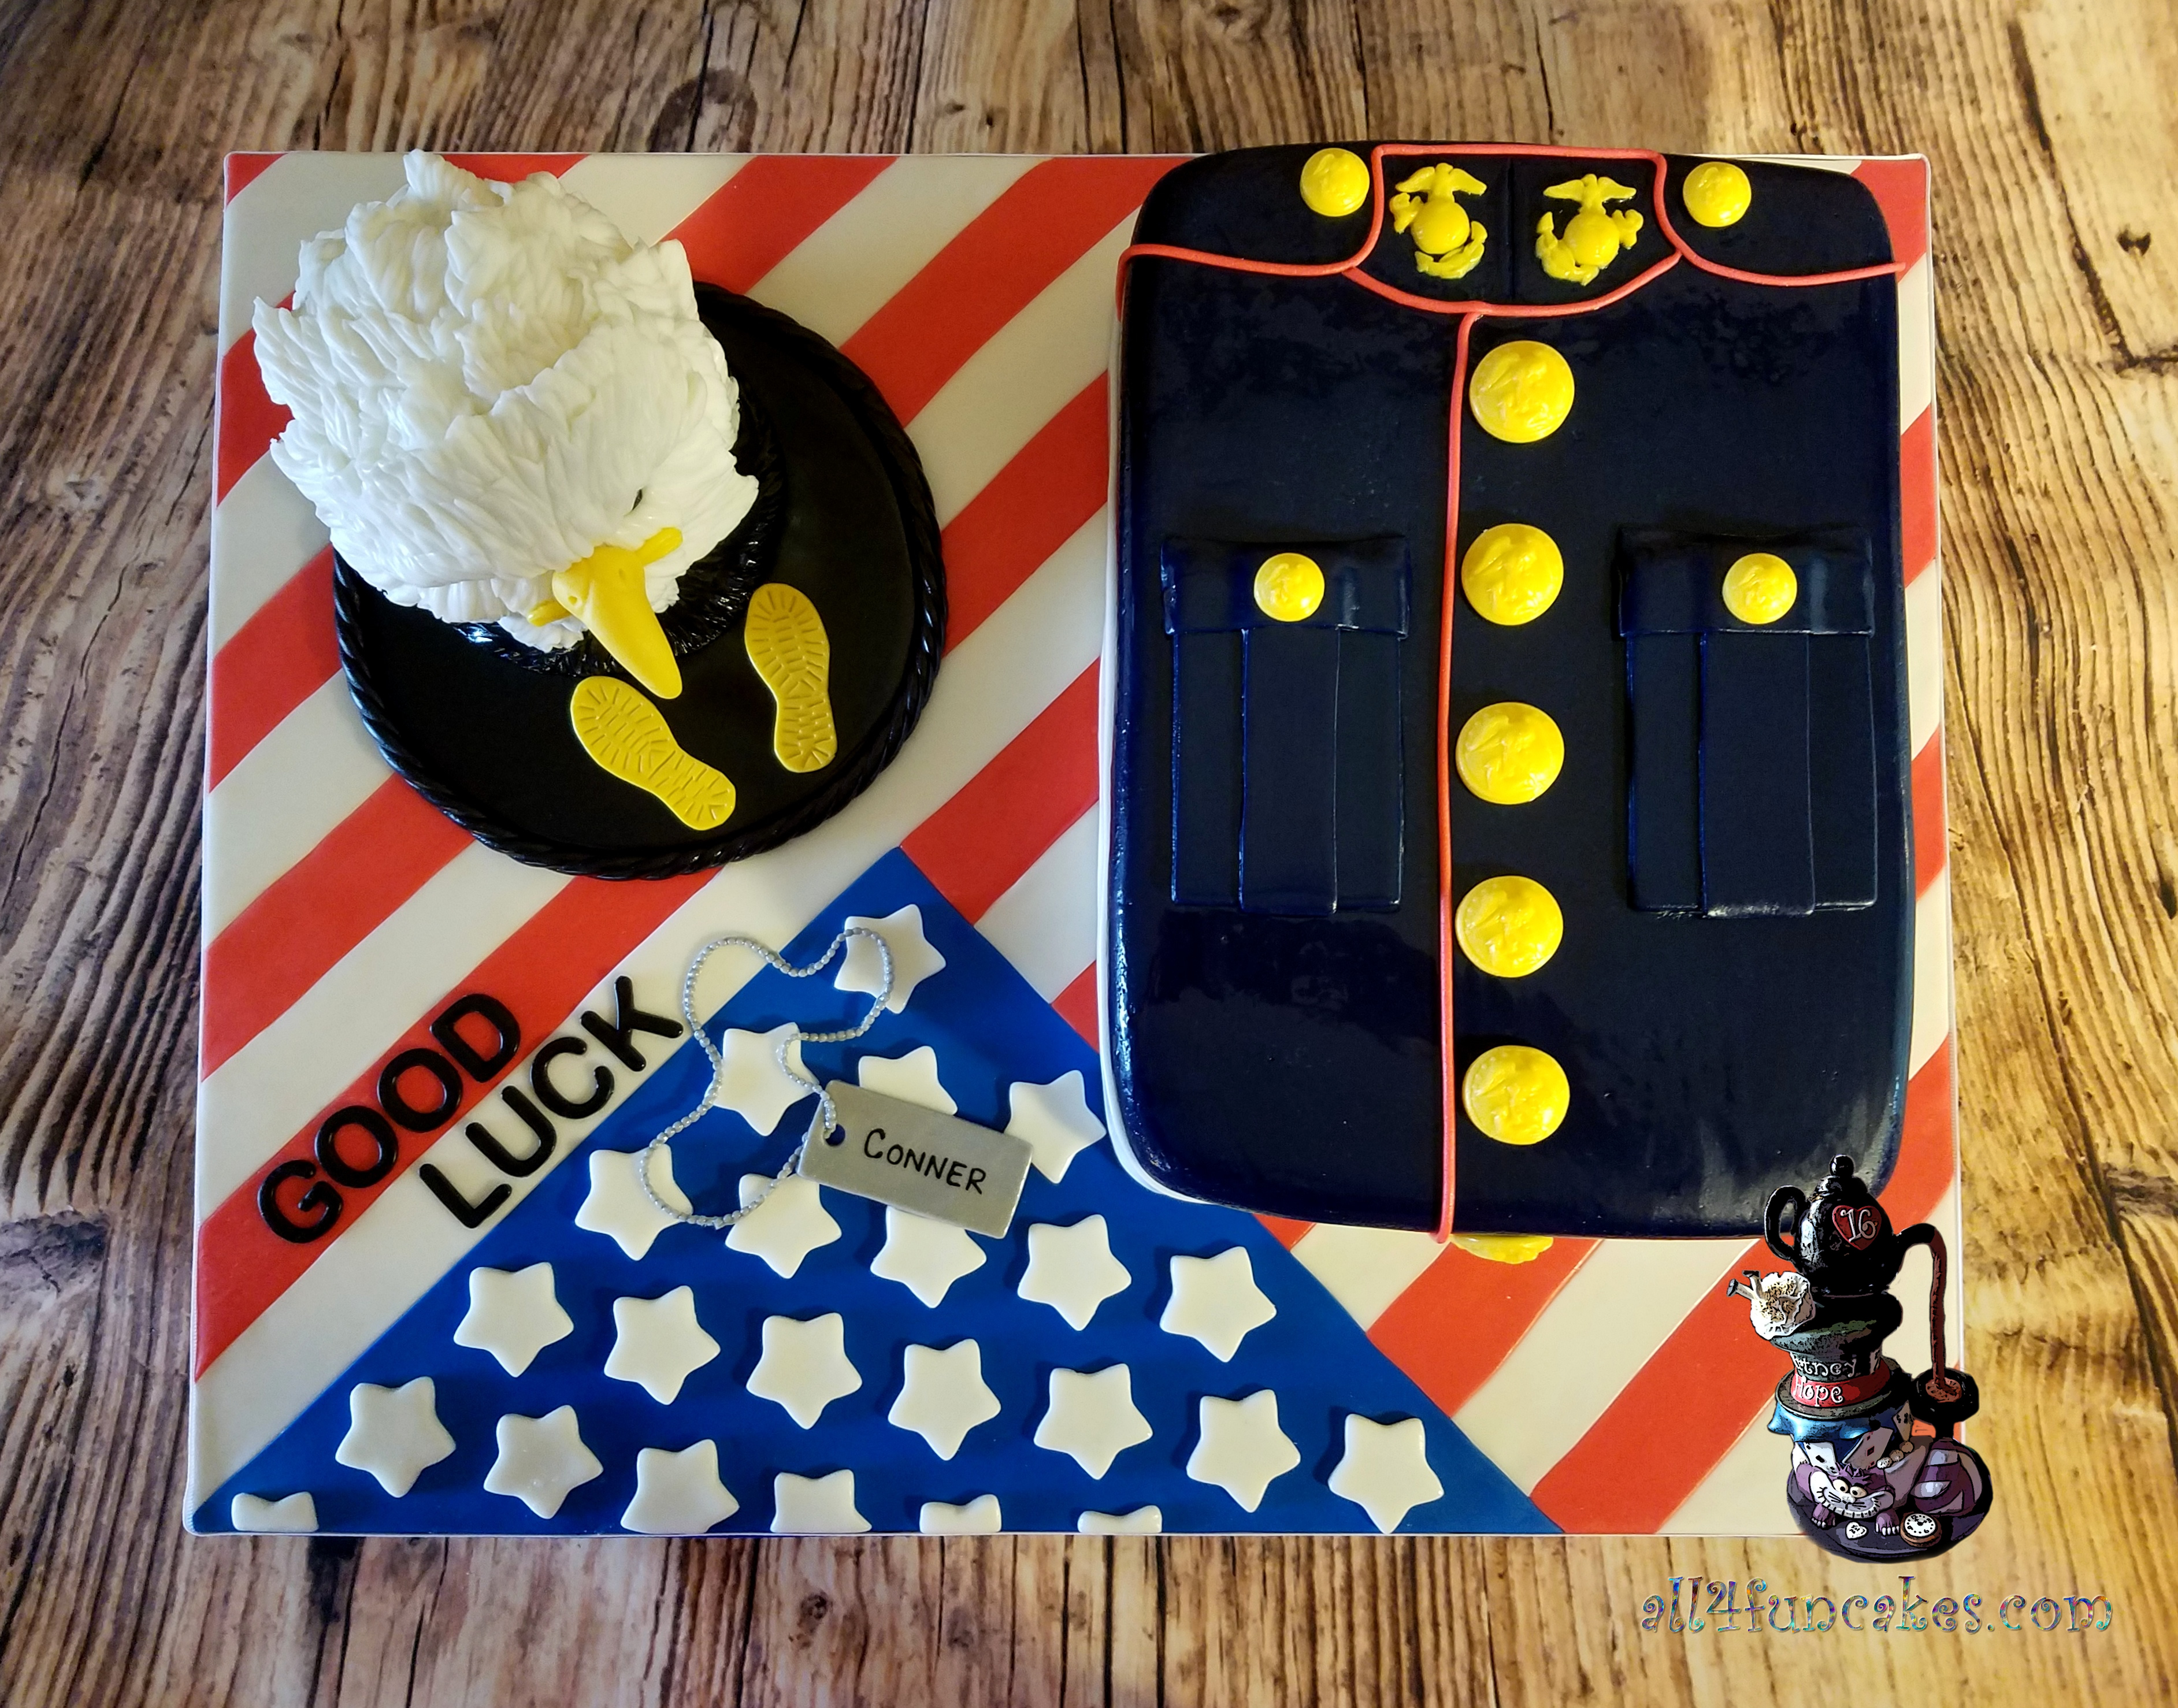 Military Boot Camp Special Occasion Cake - Marines Dress Blues Uniform Flag Sculpted Bald Eagle by All4Fun Cakes LLC 2017